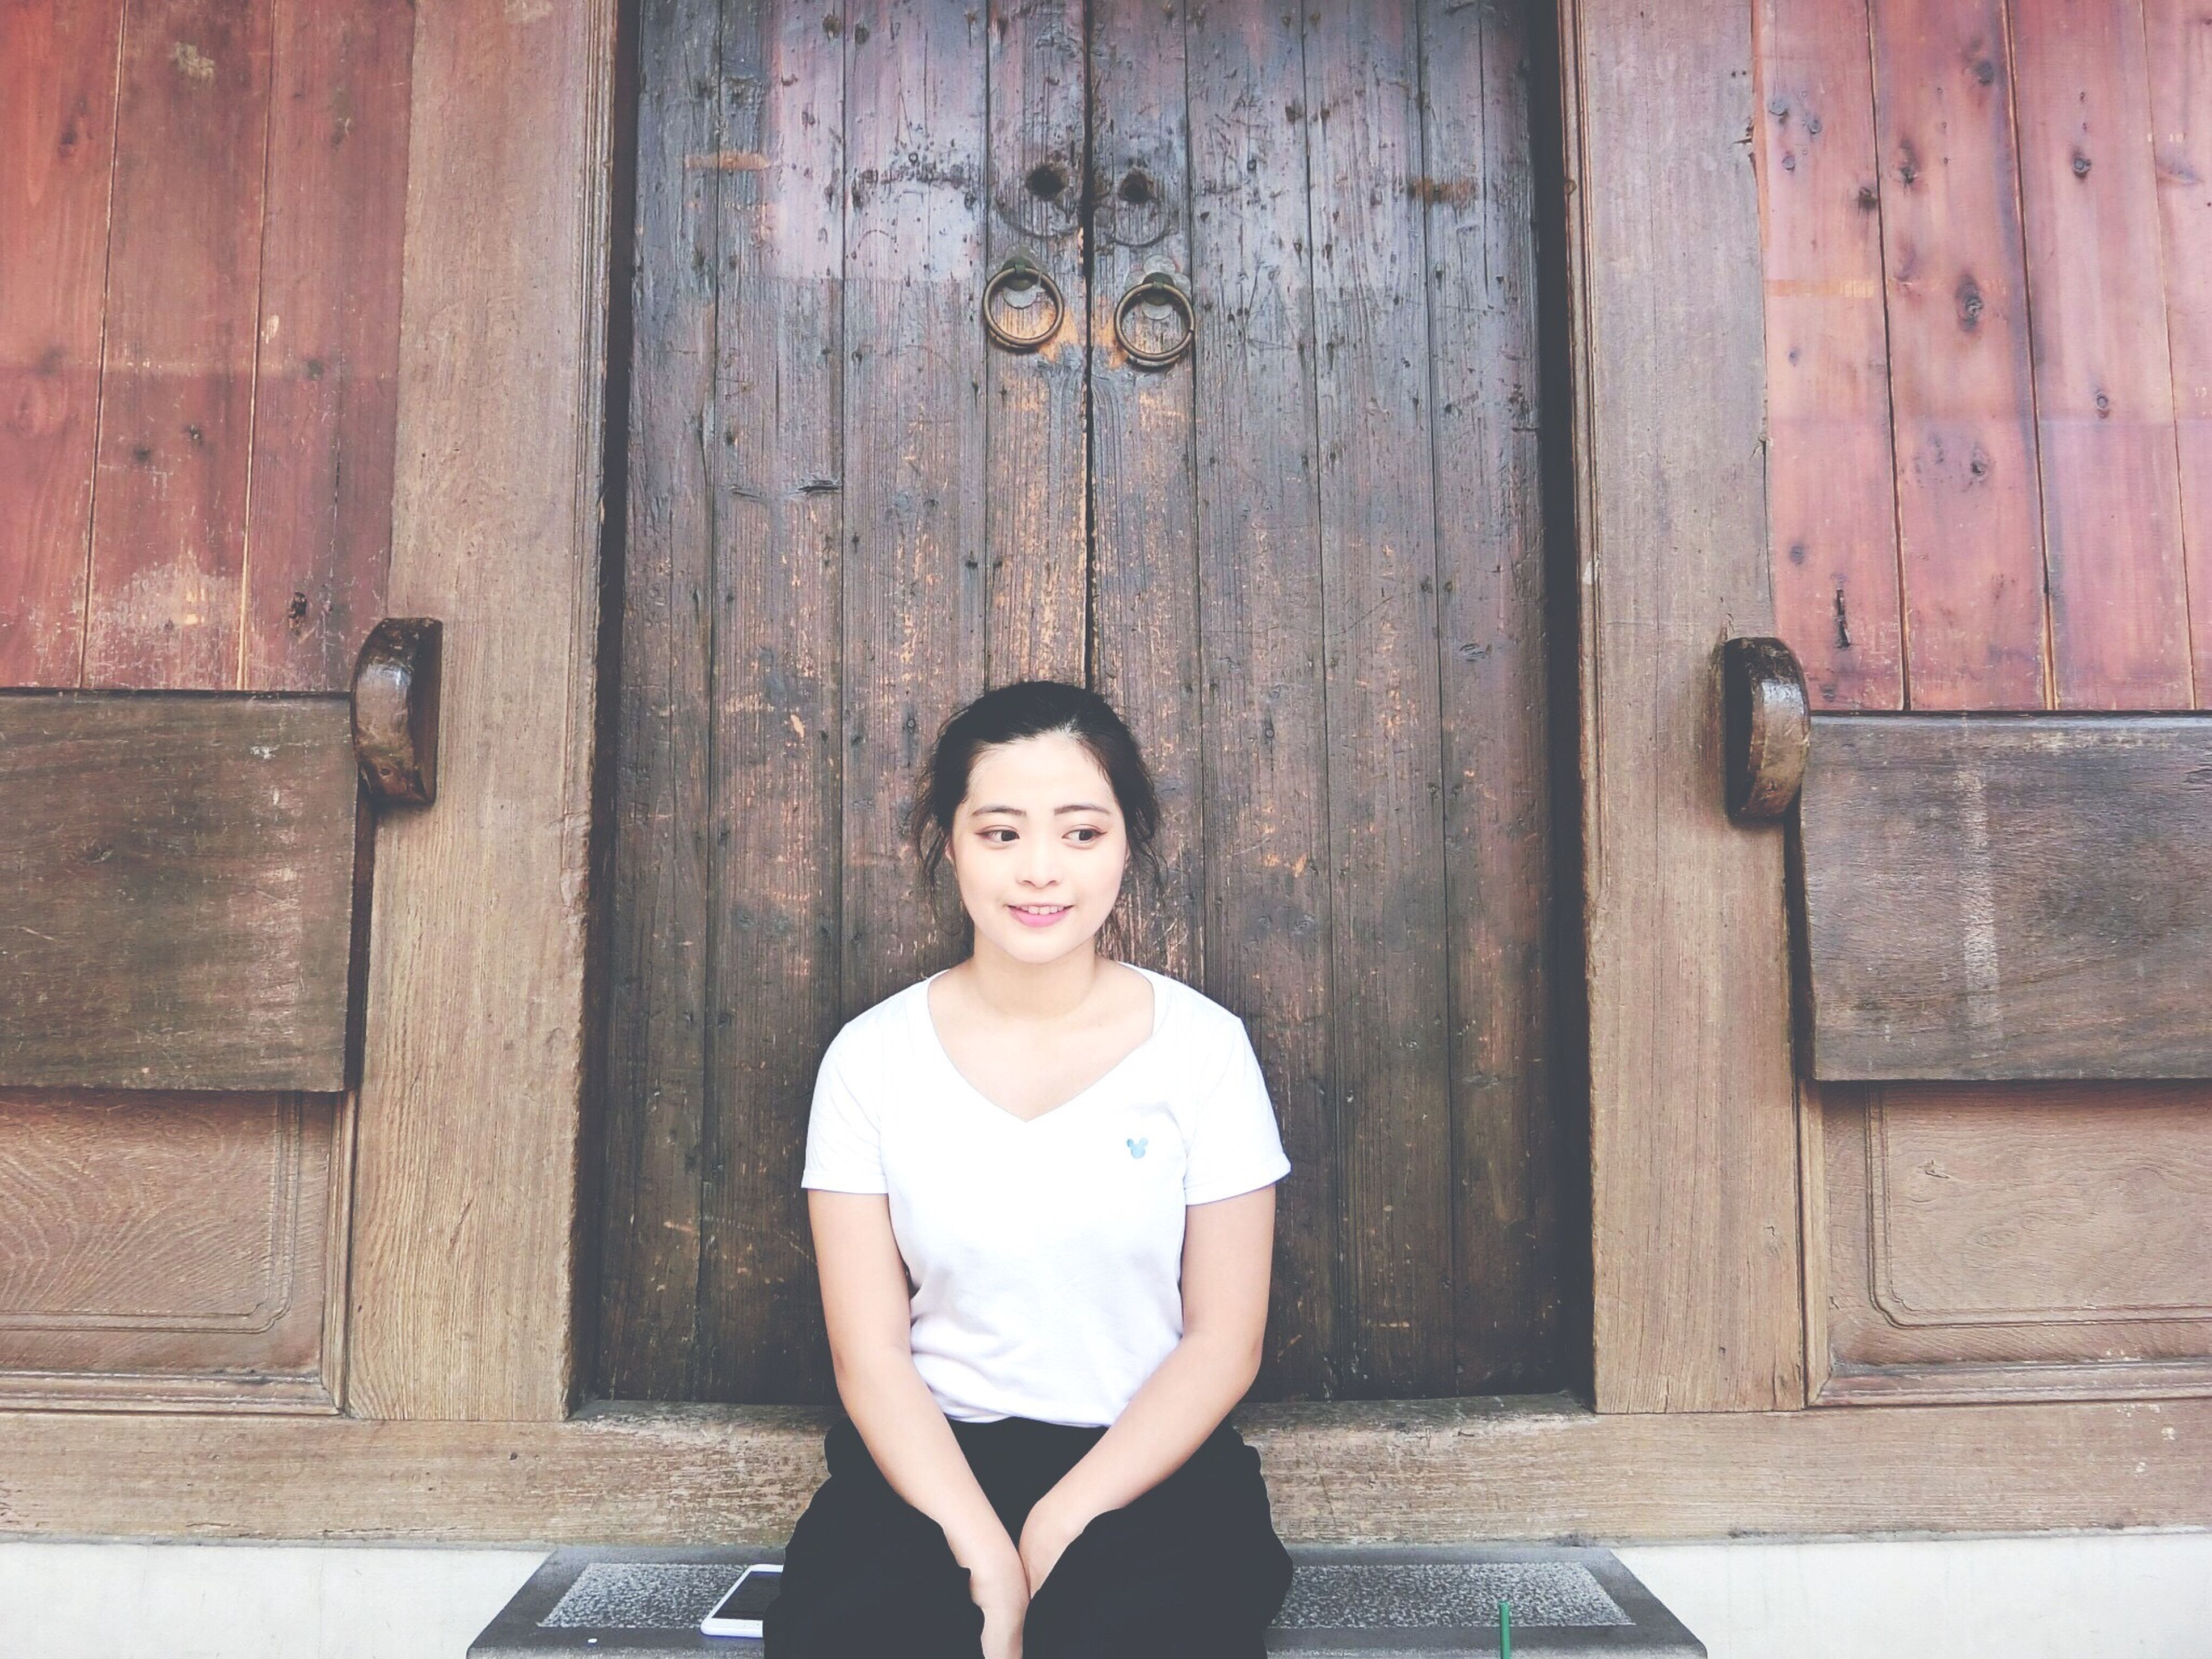 wood - material, wooden, front view, standing, person, looking at camera, lifestyles, door, casual clothing, portrait, smiling, built structure, wood, childhood, leisure activity, building exterior, architecture, elementary age